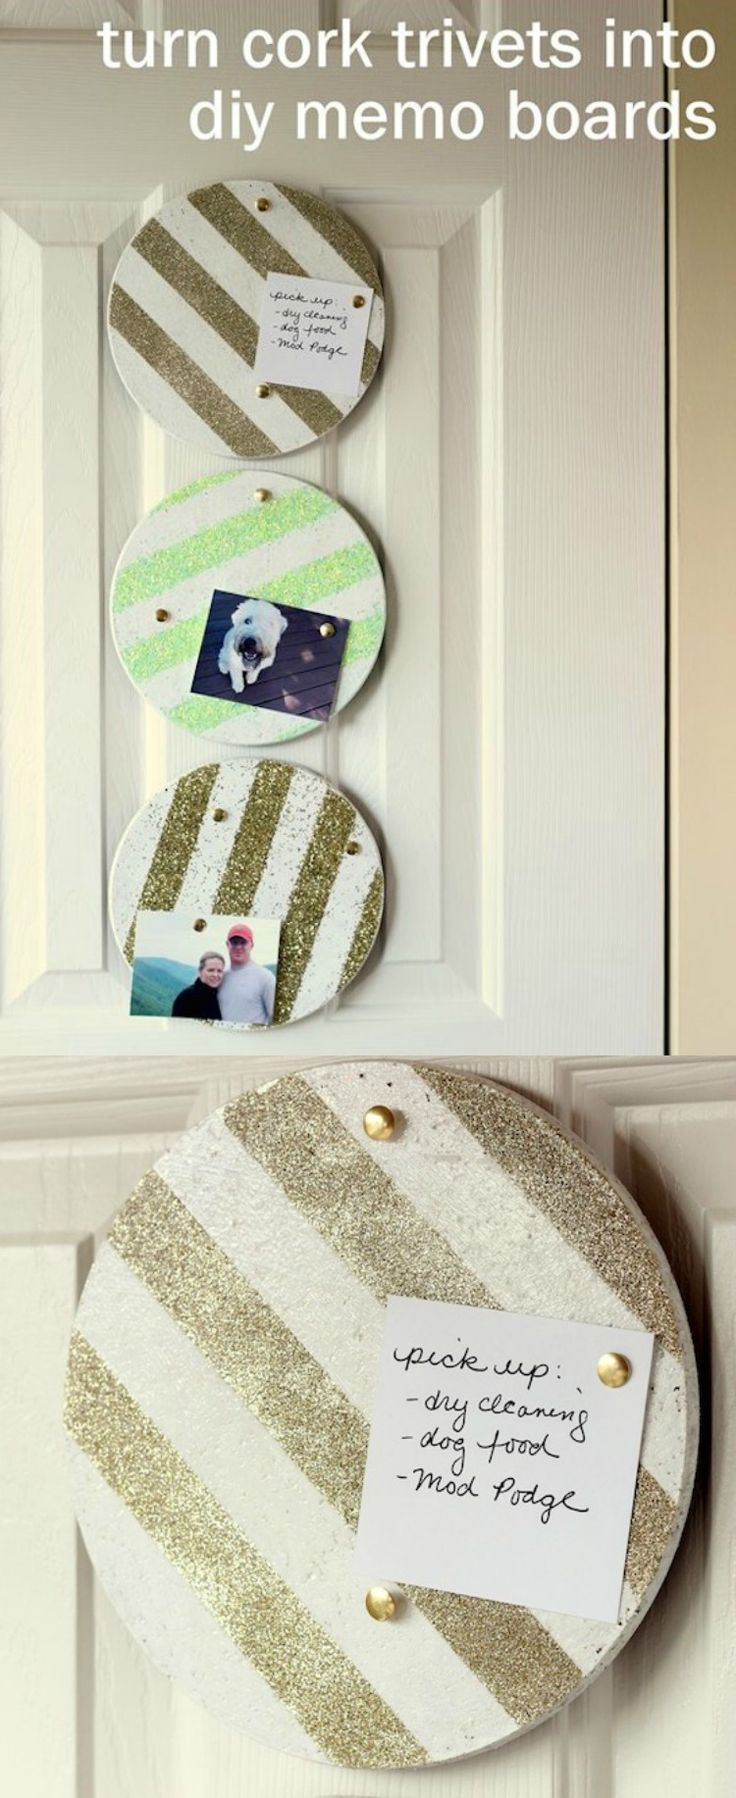 Use glitter and Mod Podge to turn old cork trivets into DIY memo boards! Customize with the glitter and paint colors of your choice.